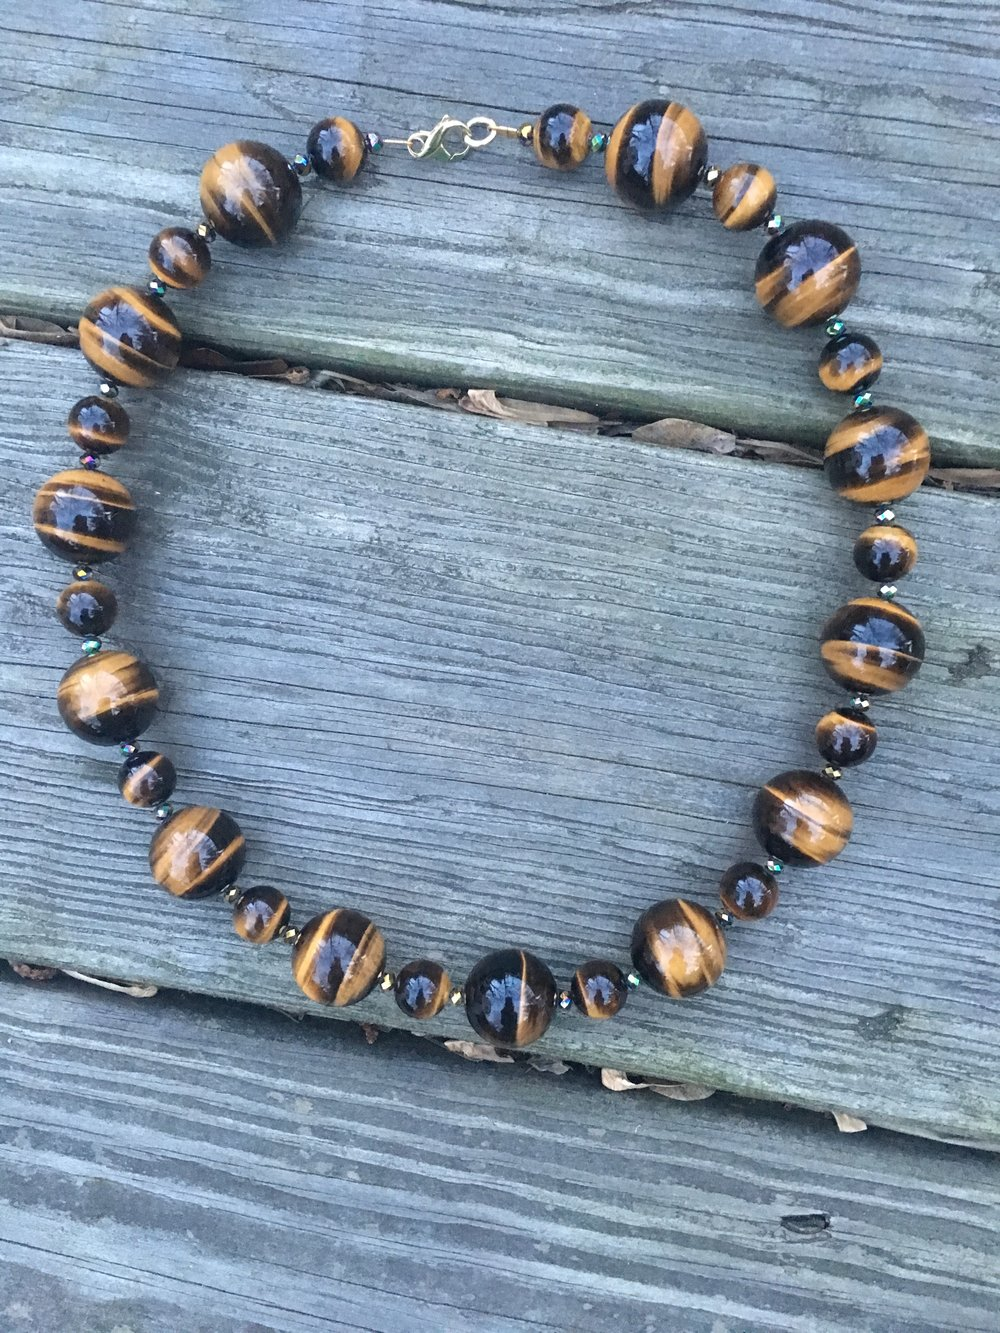 tigers eye NECKLACE  Tigers eye necklace with glass beads and gold filled clasp.